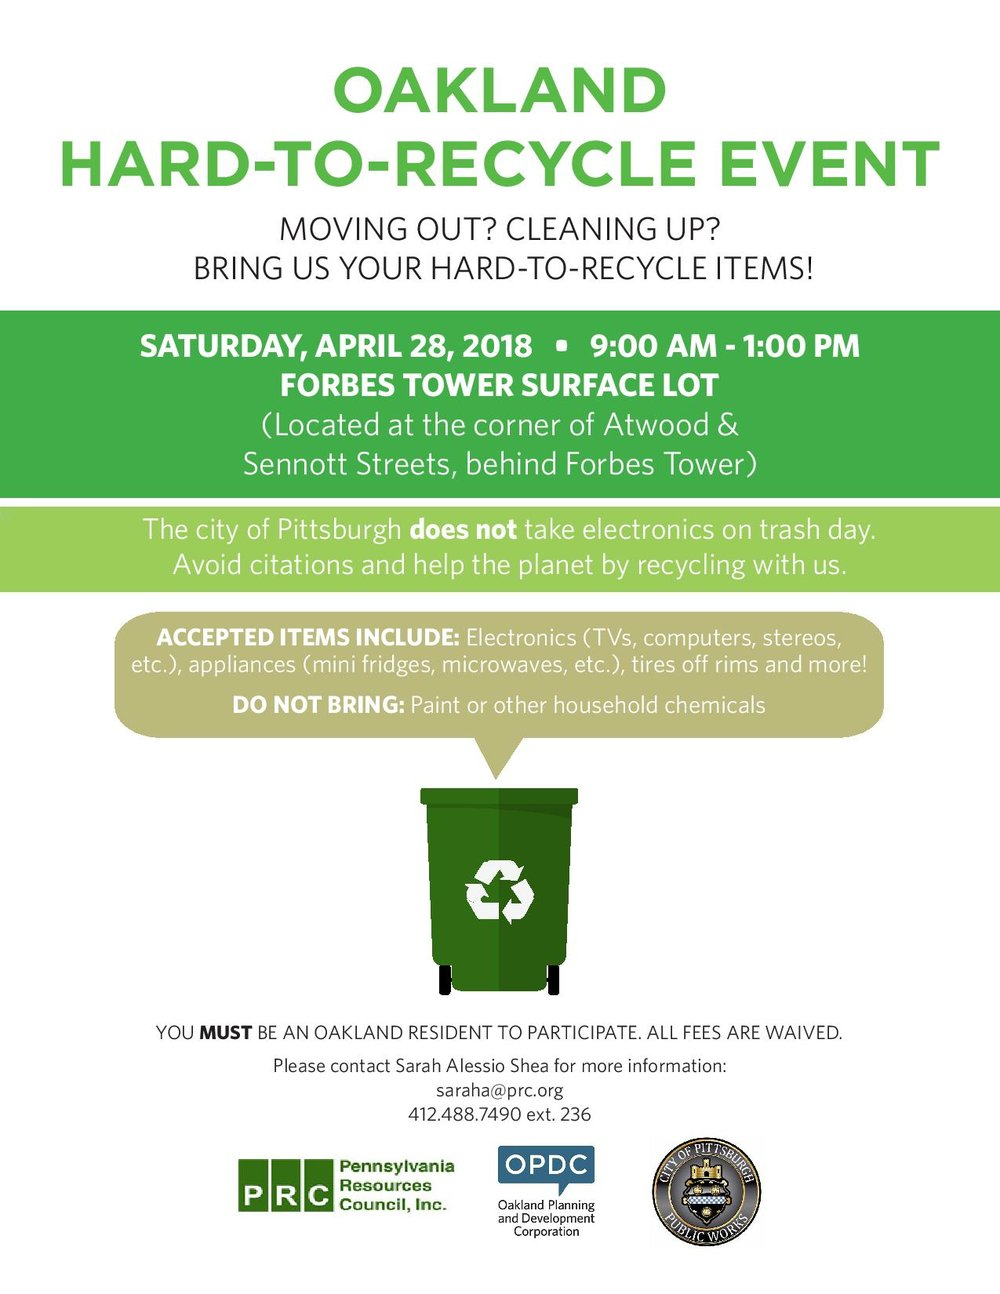 Oakland Hard-to-Recycle Event-page-001 (4).jpg